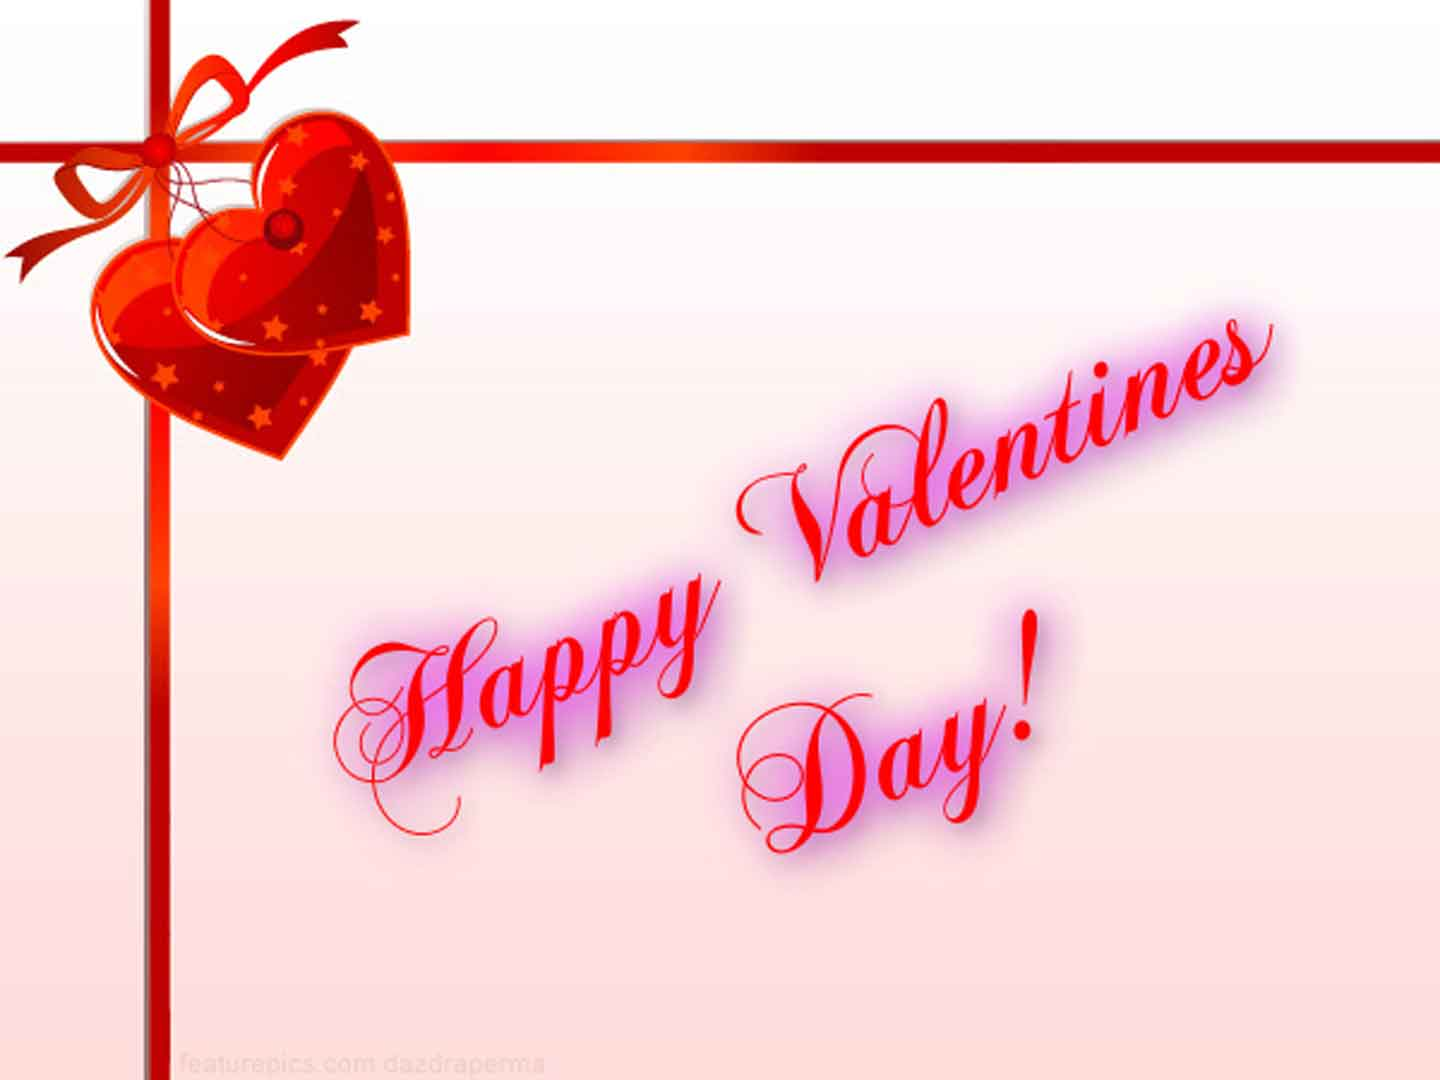 New Valentines Day Widescreen Wallpaper   HD Wallpapers 1440x1080